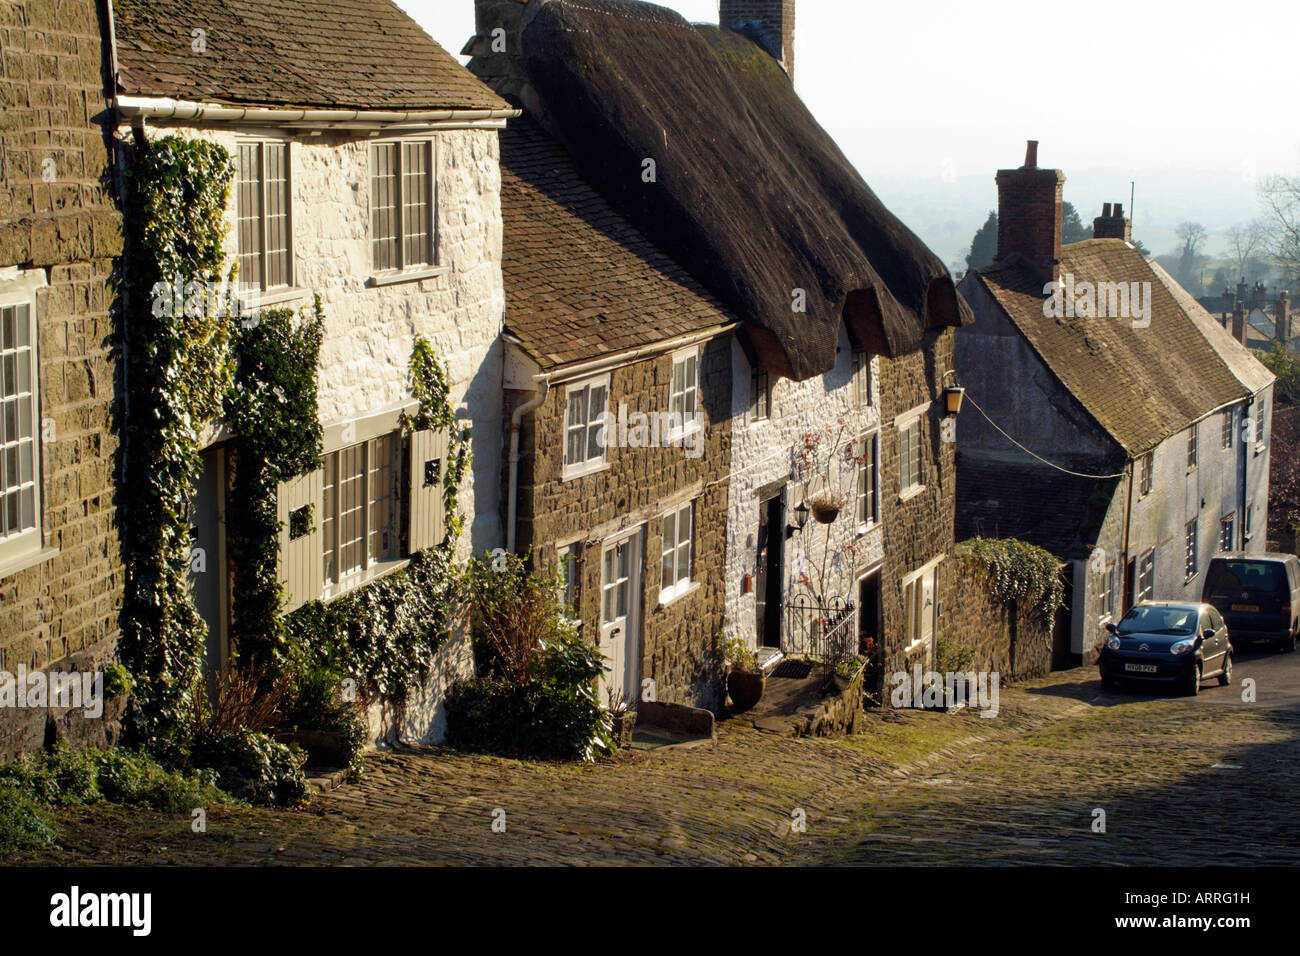 Gold Hill made famous by Hovis Advertisement in Shaftesbury Dorset England Edge of Town Housing Wintertime landscape - Stock Image